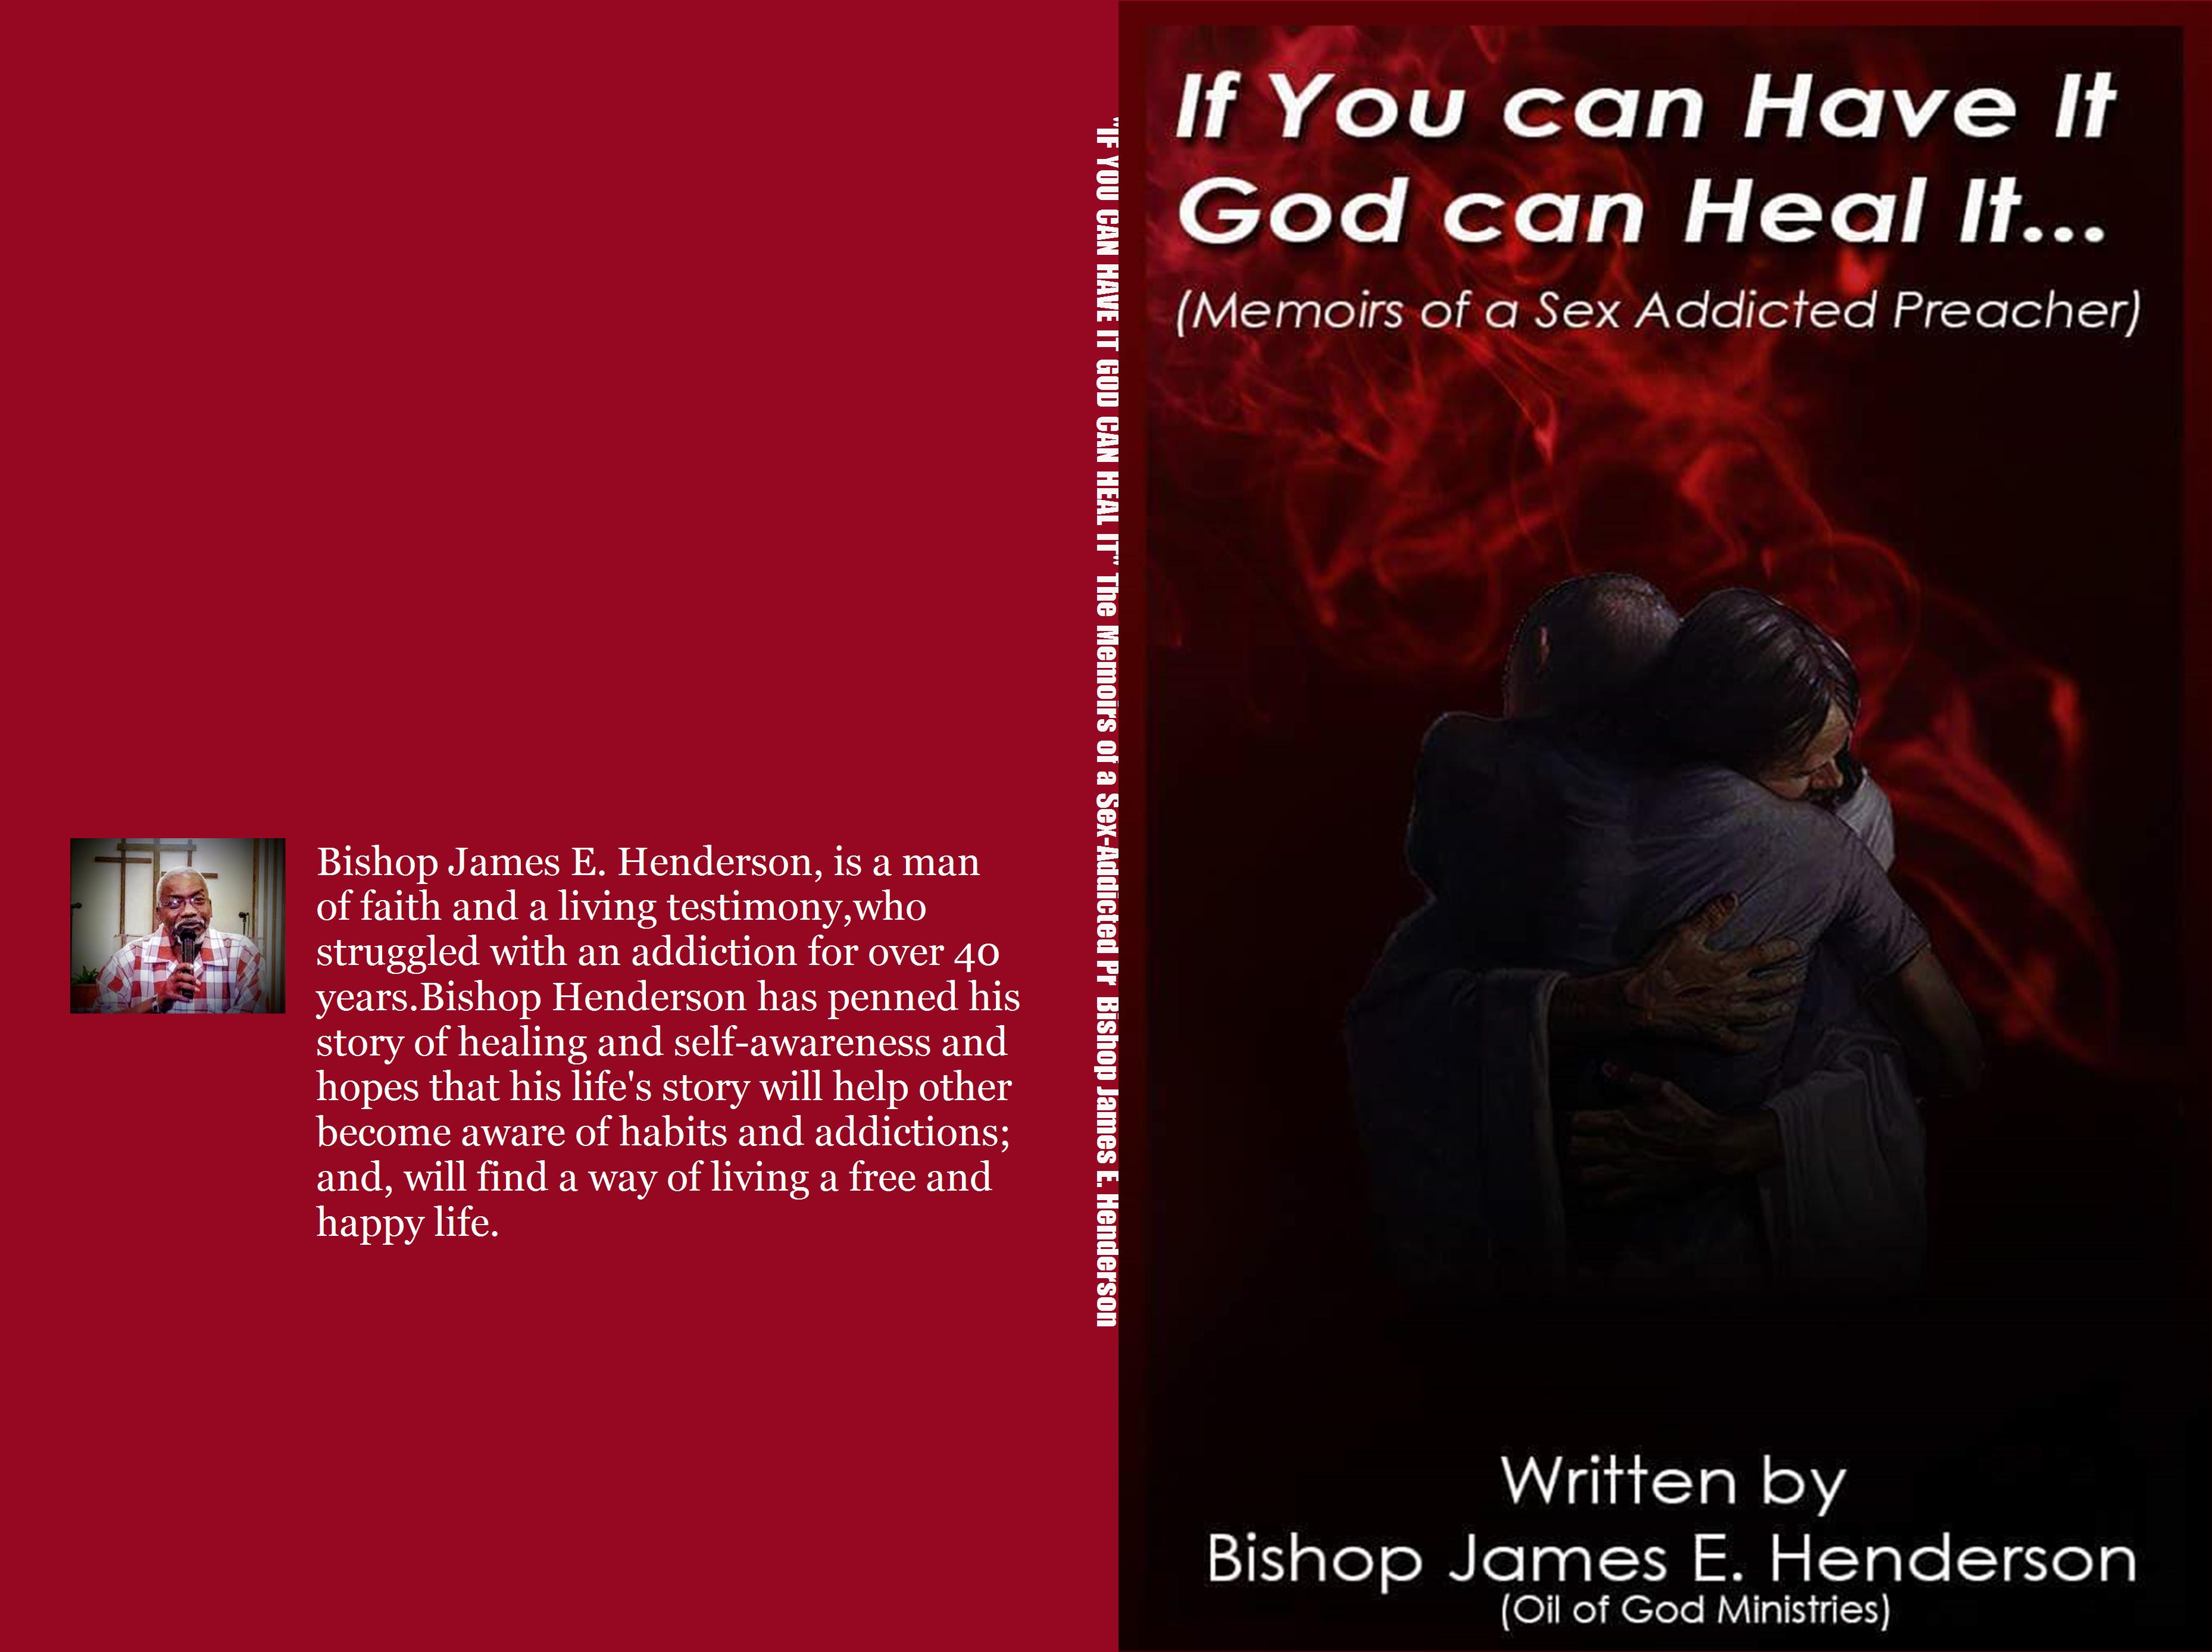 """IF YOU CAN HAVE IT GOD CAN HEAL IT"" The Memoirs of a Sex-Addicted Preacher cover image"